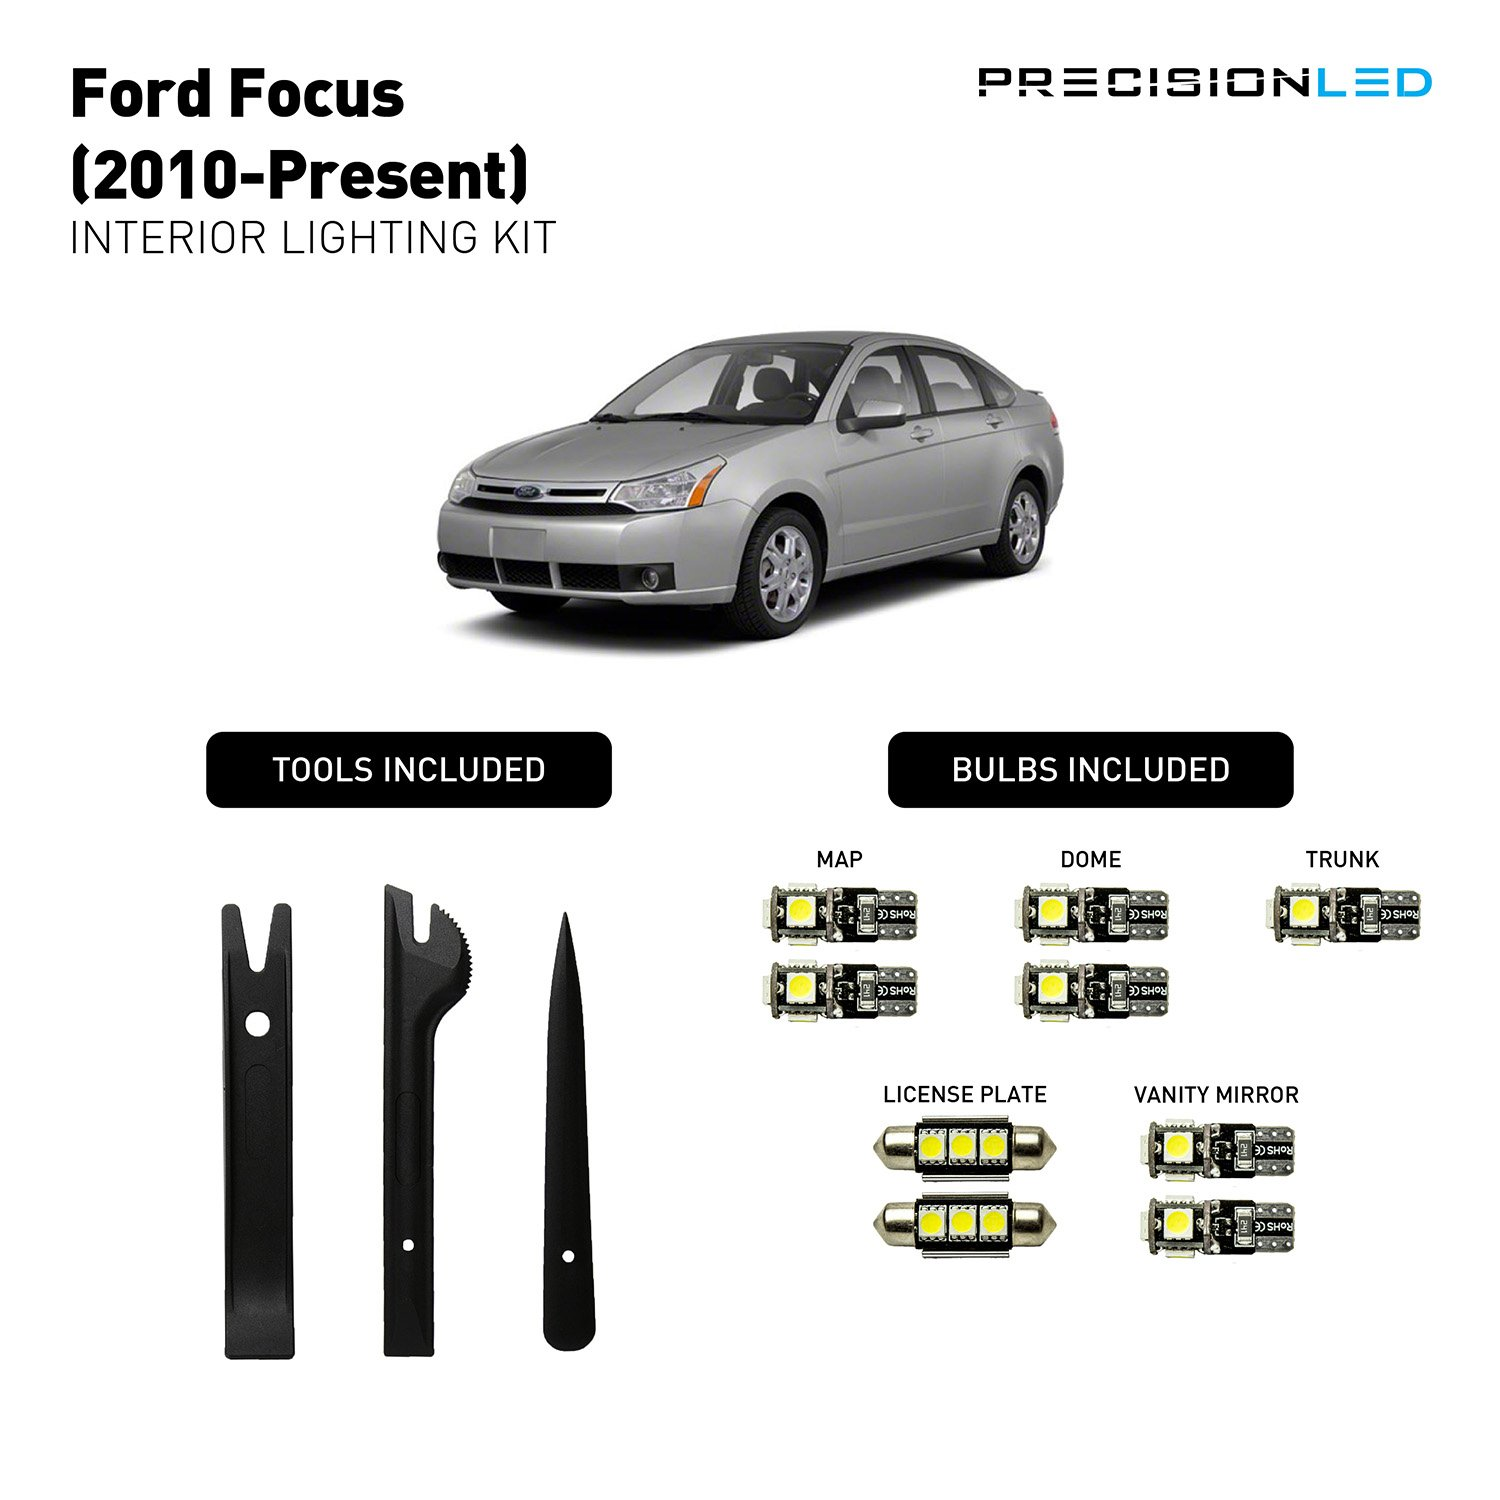 Amazon.com: 9 Pcs Premium Quality Precision LED 2010 - 2016 Ford Focus LED  Interior Lighting Kit with Install Tools (8000K): Automotive